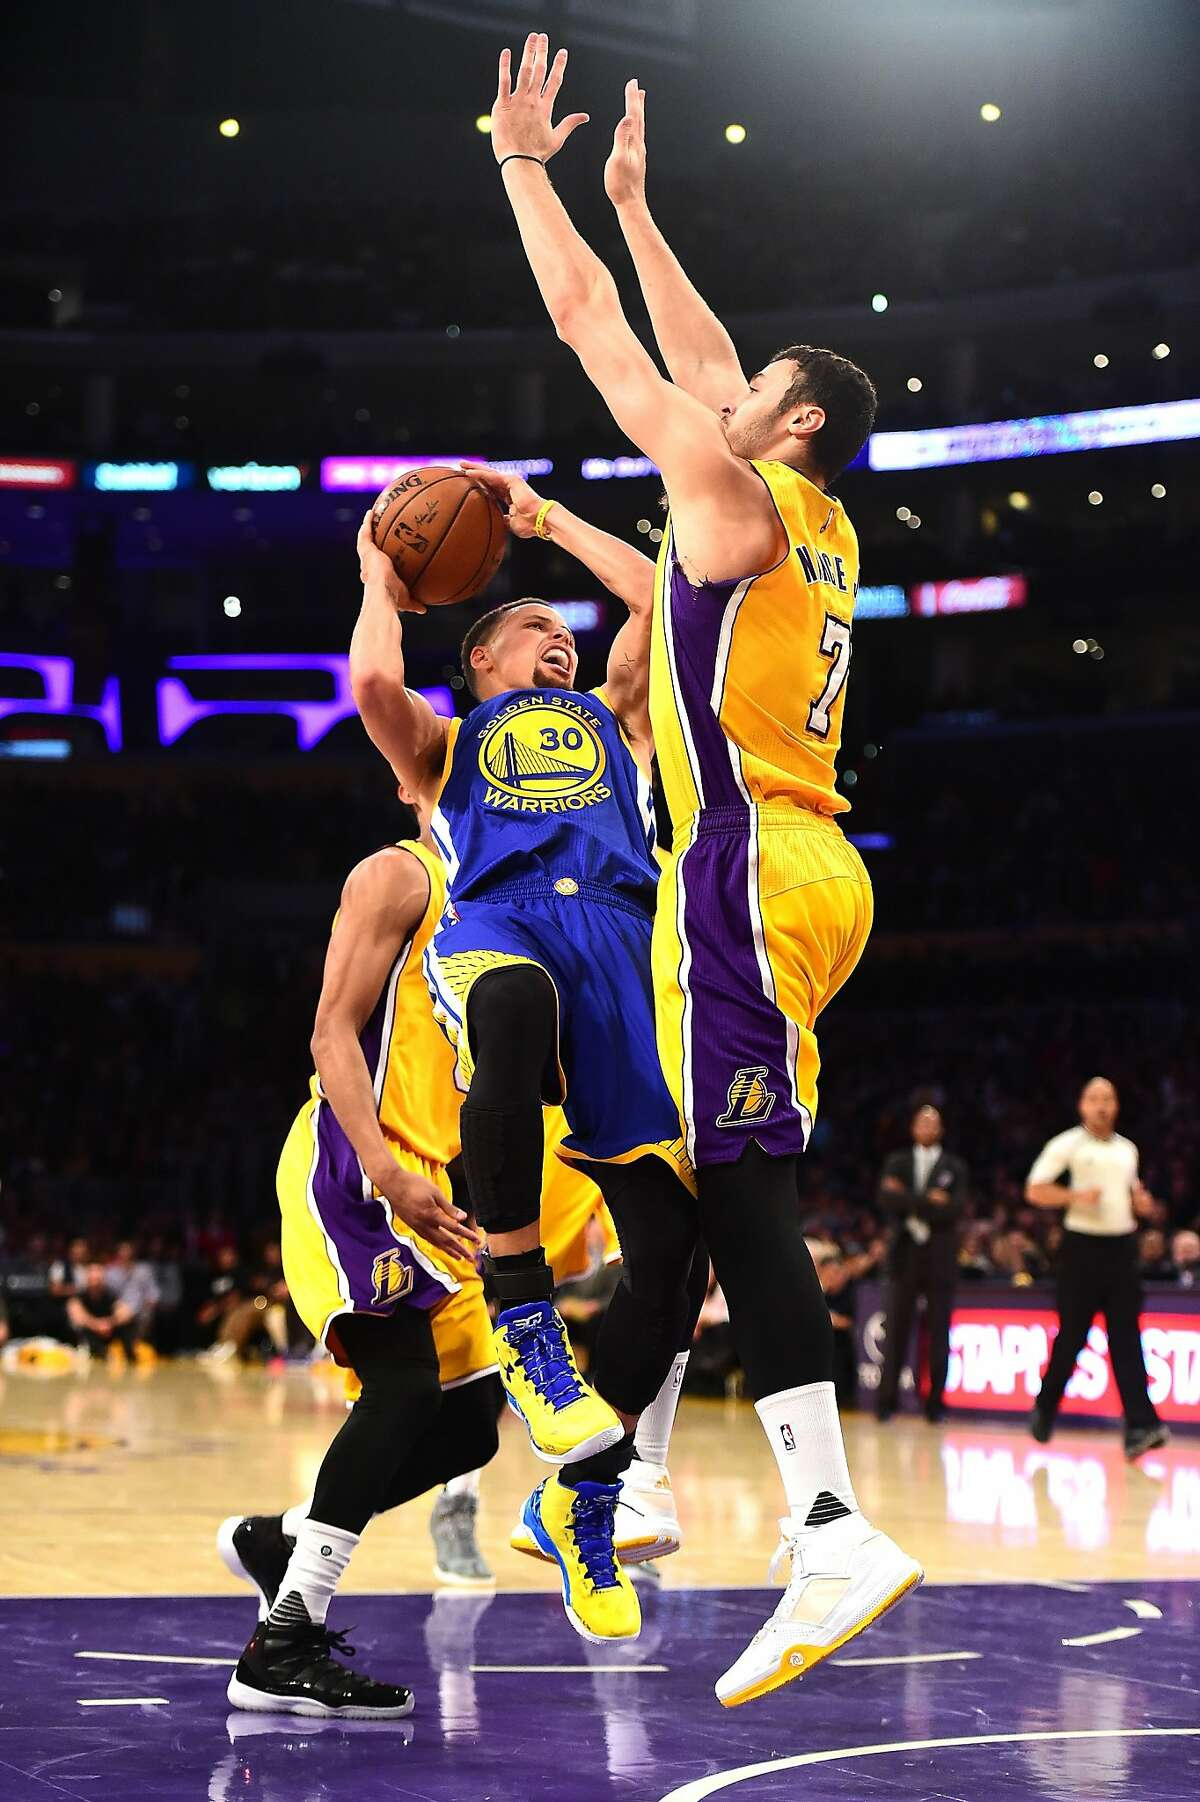 Stephen Curry of the Golden State Warriors attempts a shot in front of Larry Nance Jr. #7 of the Los Angeles Lakers during the first half at Staples Center on January 5, 2016 in Los Angeles, California.